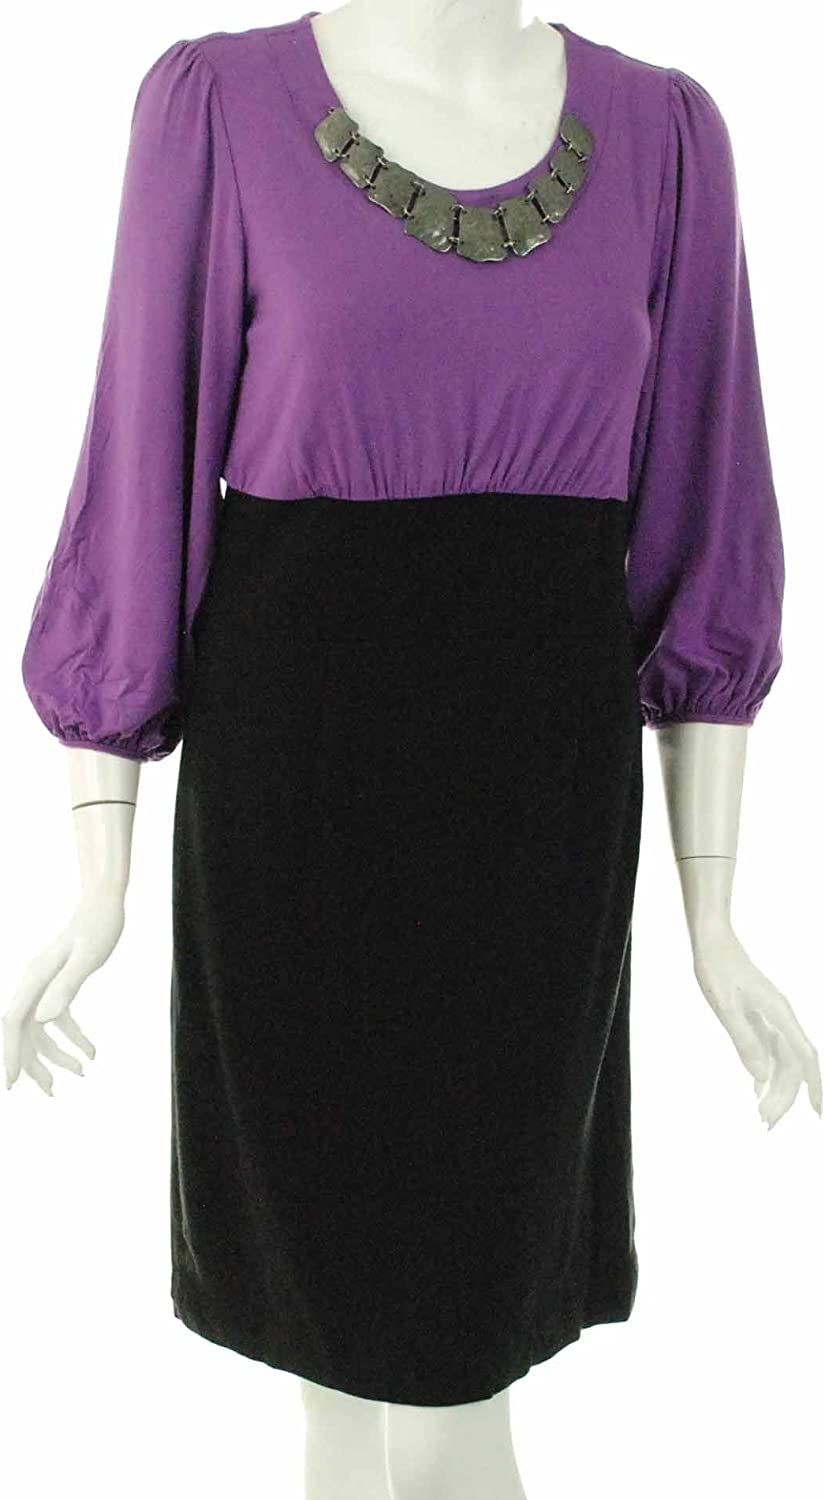 Alfani Women's Grape & Black Dress Size 6